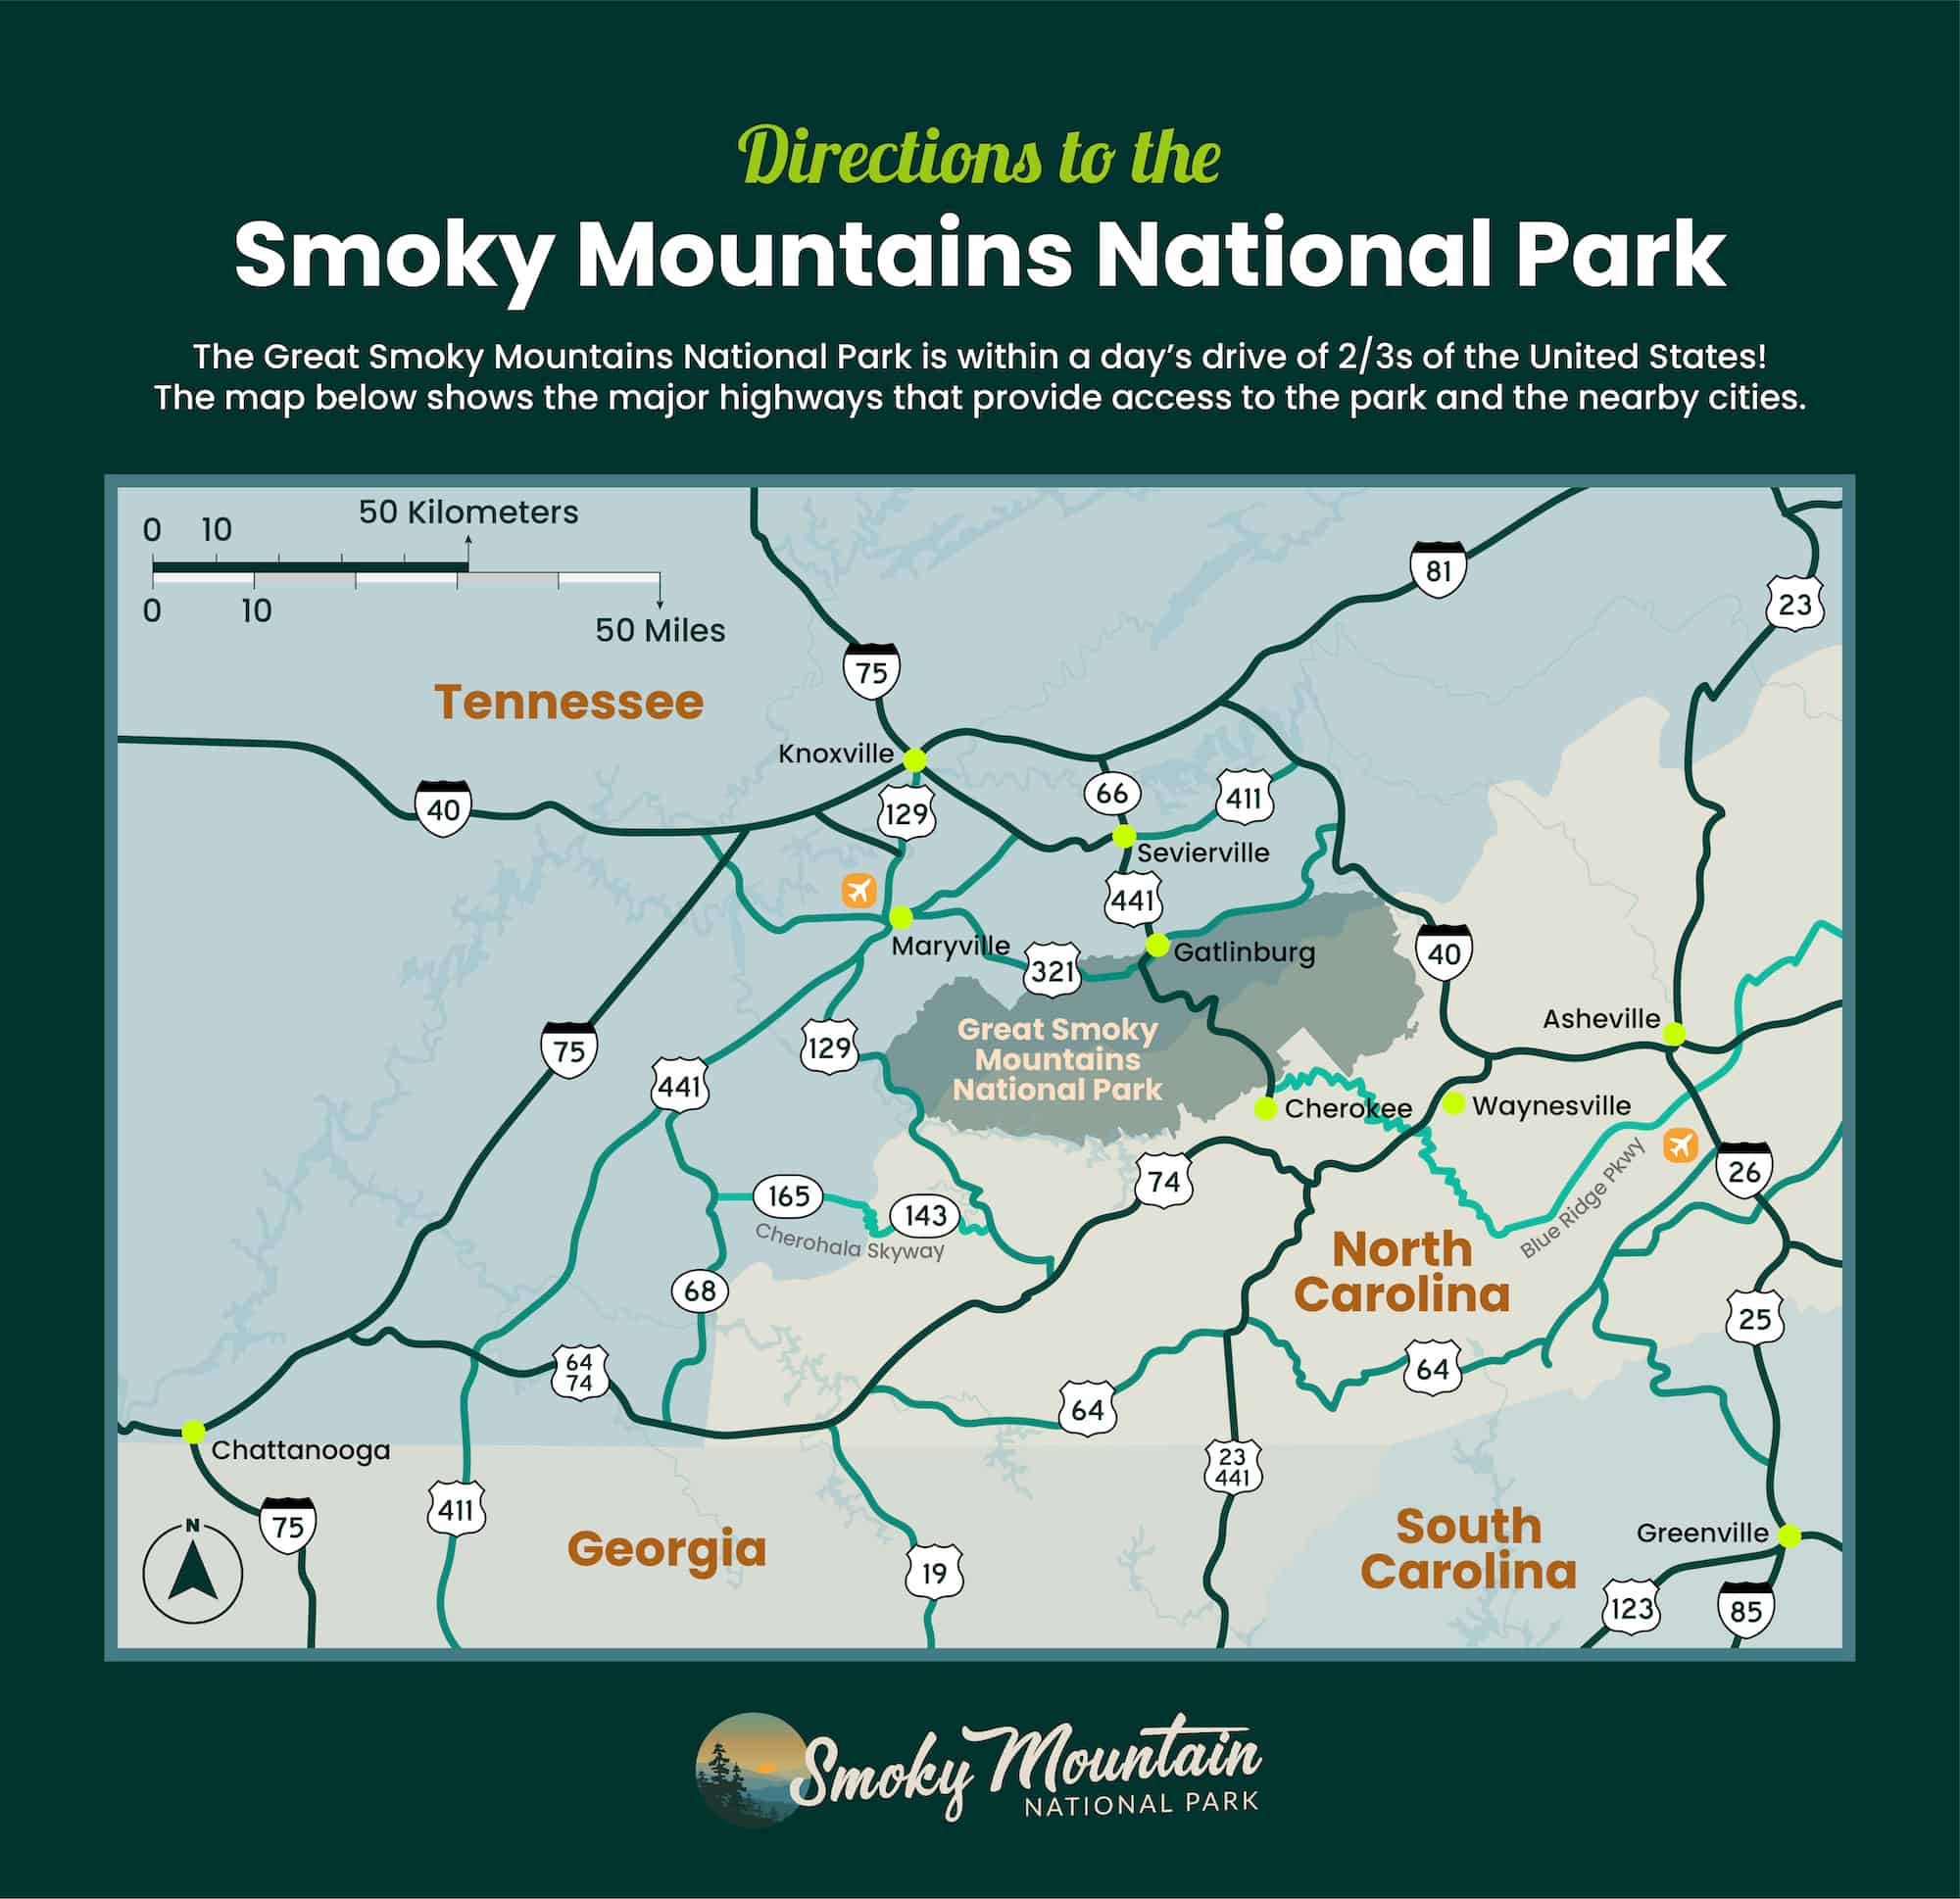 Map of directions to the Great Smoky Mountains National Park